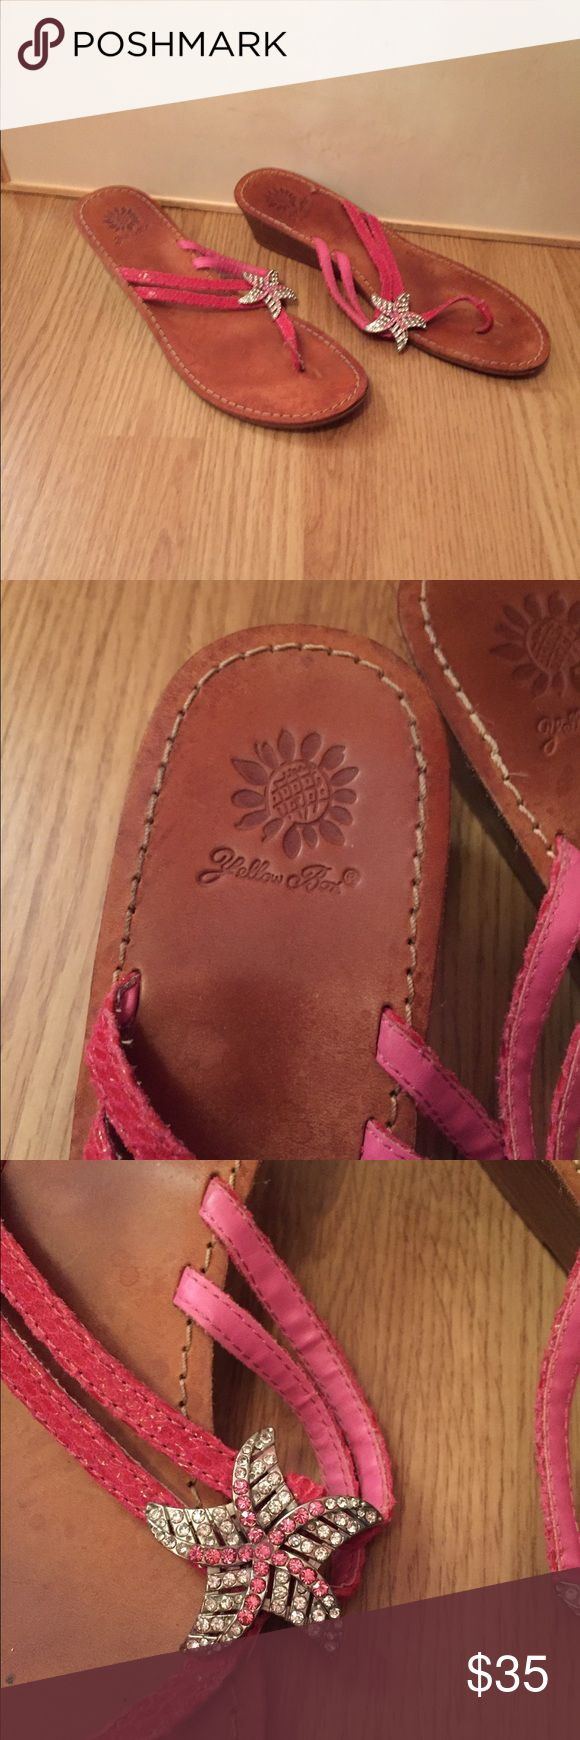 Yellow Box Starfish Sandals sz 8.5 Pretty starfish sandals by Yellow Box in size 8.5. Leather uppers. Used twice. Coral color. Yellow Box Shoes Sandals